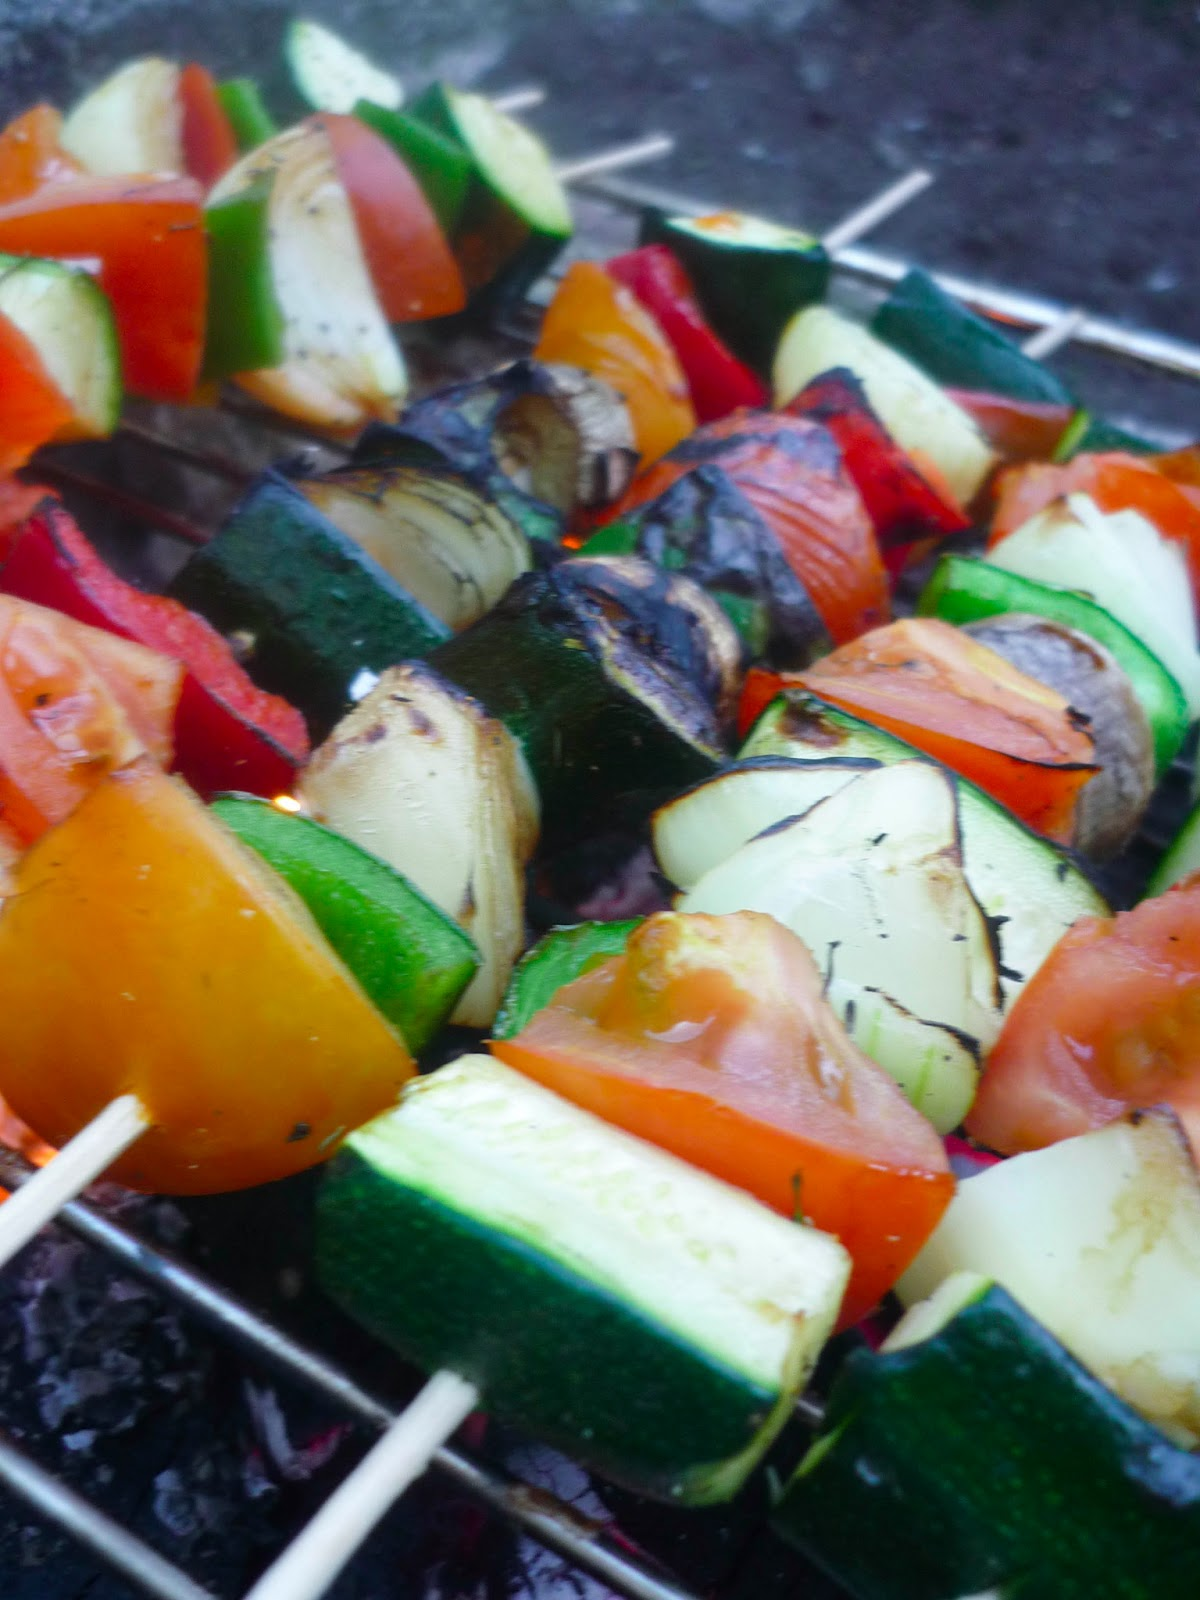 Recette barbecue inratable brochettes aux légumes Terrafemina